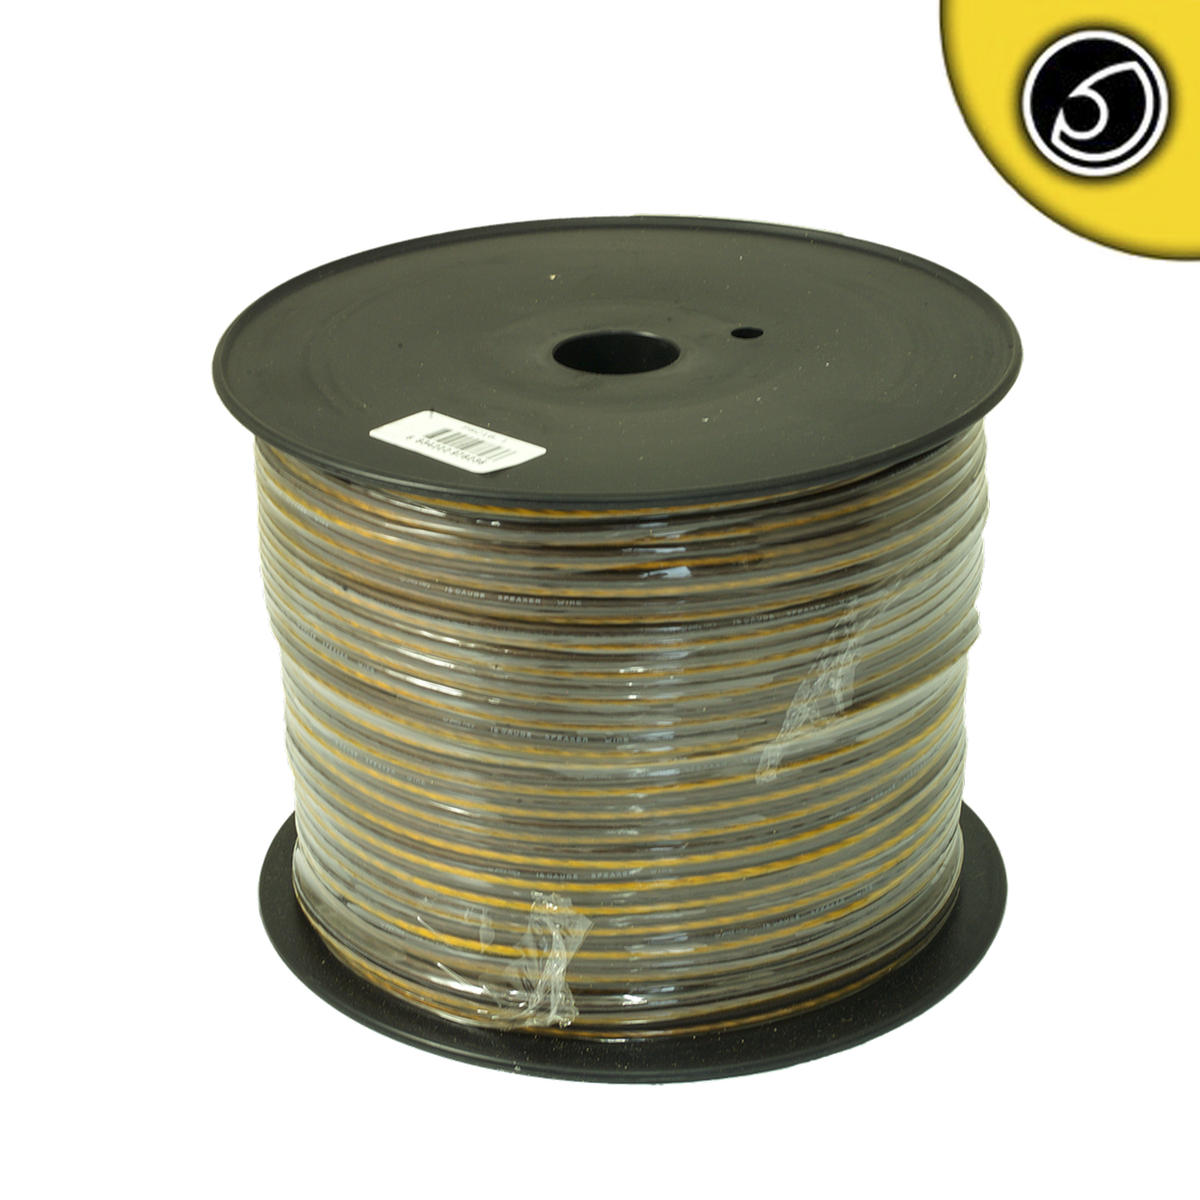 Bassface PSC16.1 150m Roll 16AWG 1.5mm 15% CCA Speaker Cable Wire 112 Strand